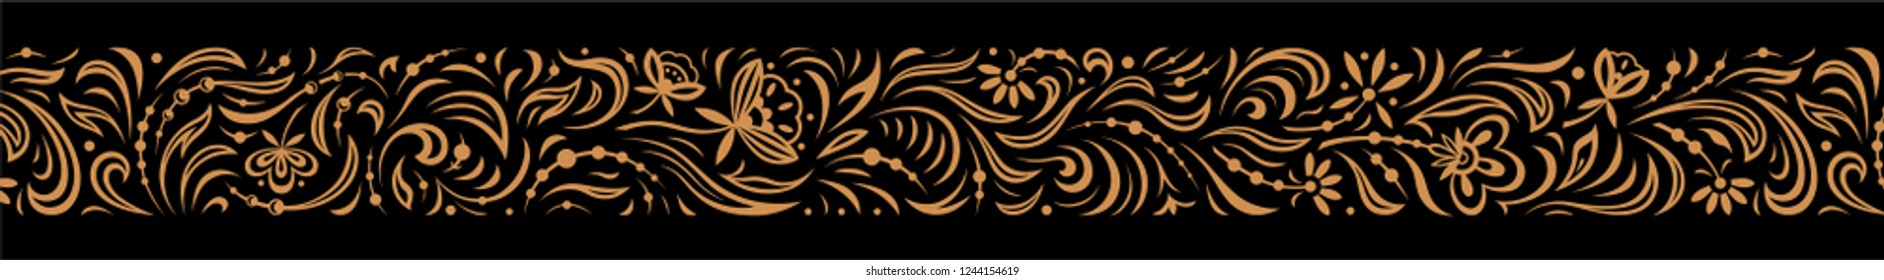 Vintage ornate seamless border pattern in russian traditional style. Golden openwork narrow ornament of leaves and flowers on black background